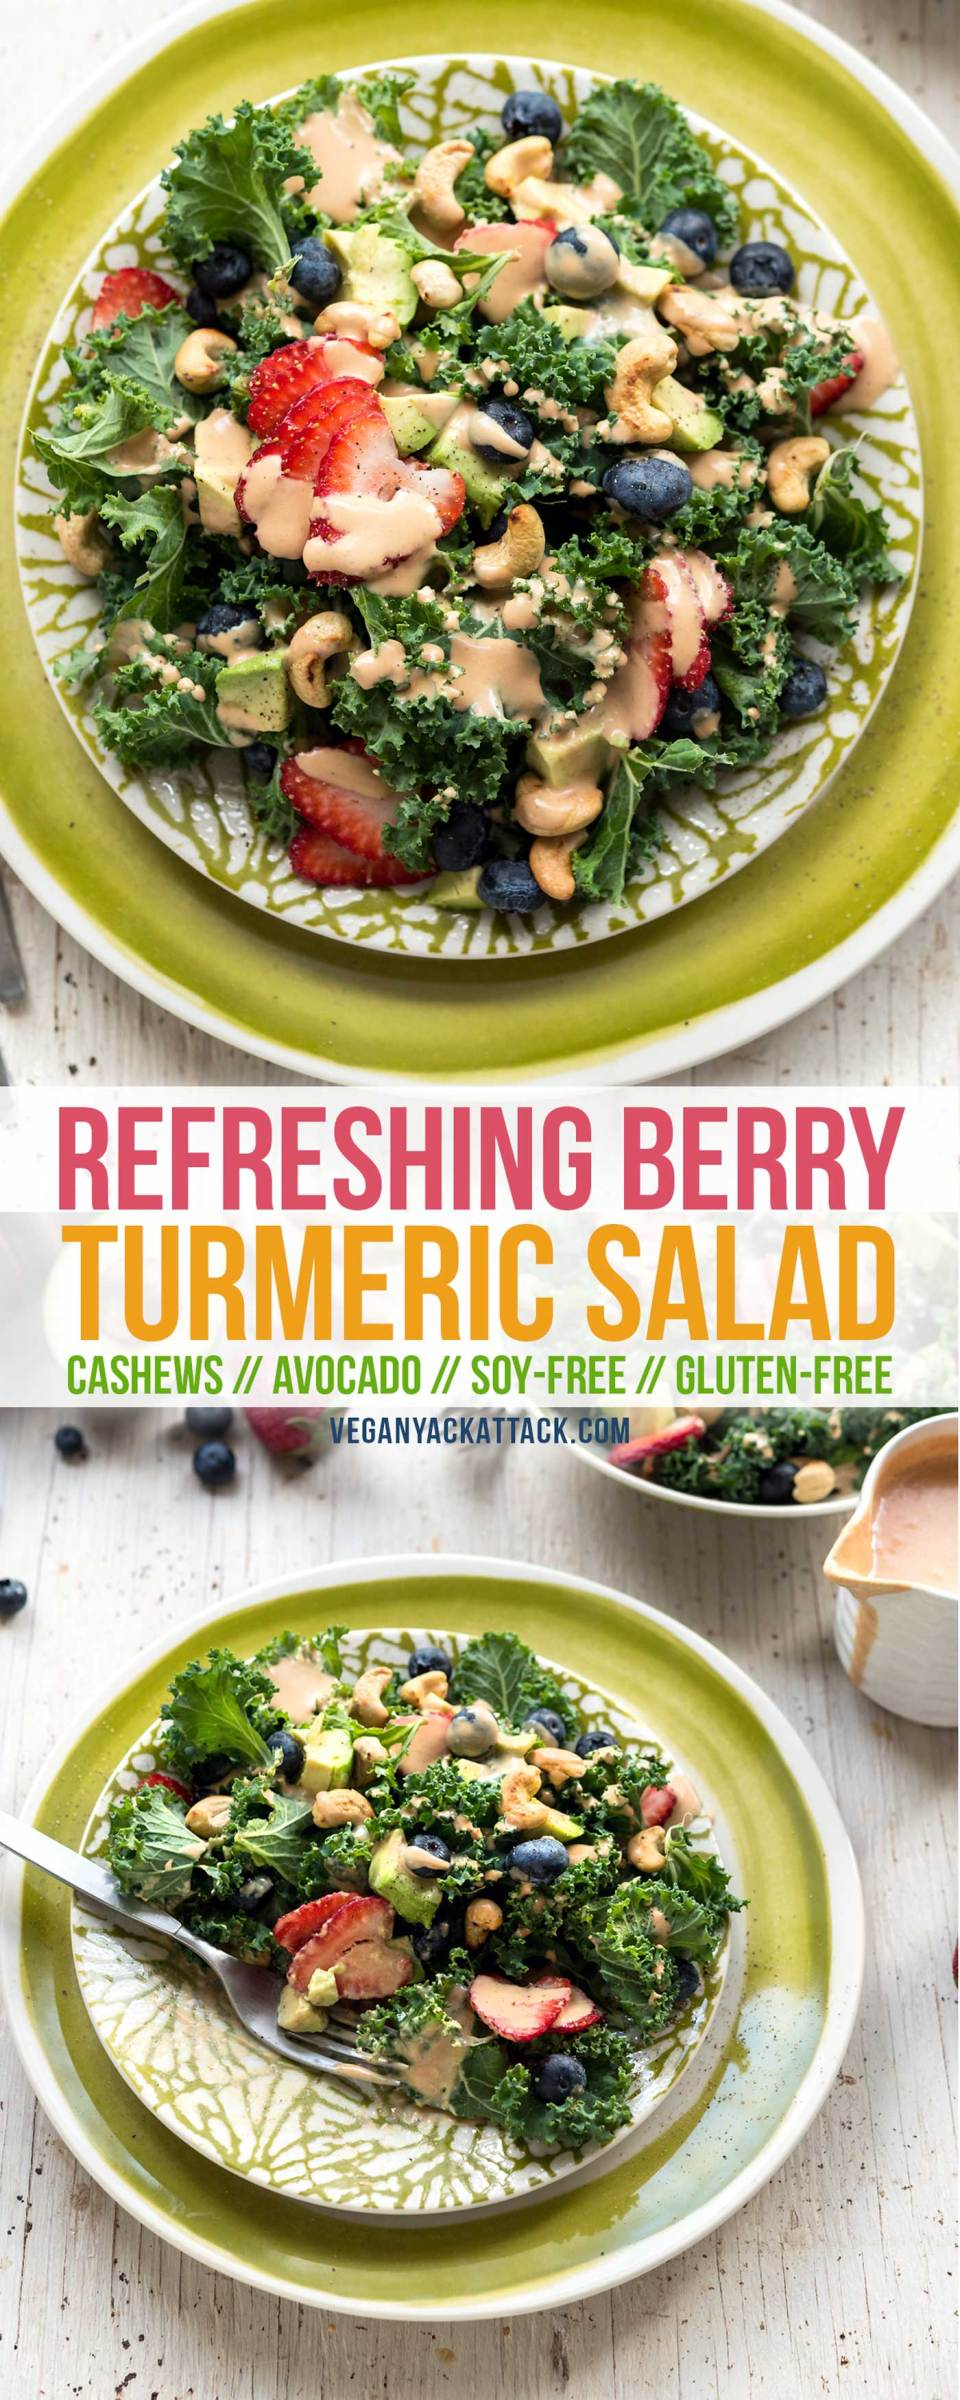 Make this Refreshing Strawberry Turmeric Salad to wow your eyes and stomach with bold colors and flavor! Easy to put together and allergy-friendly.